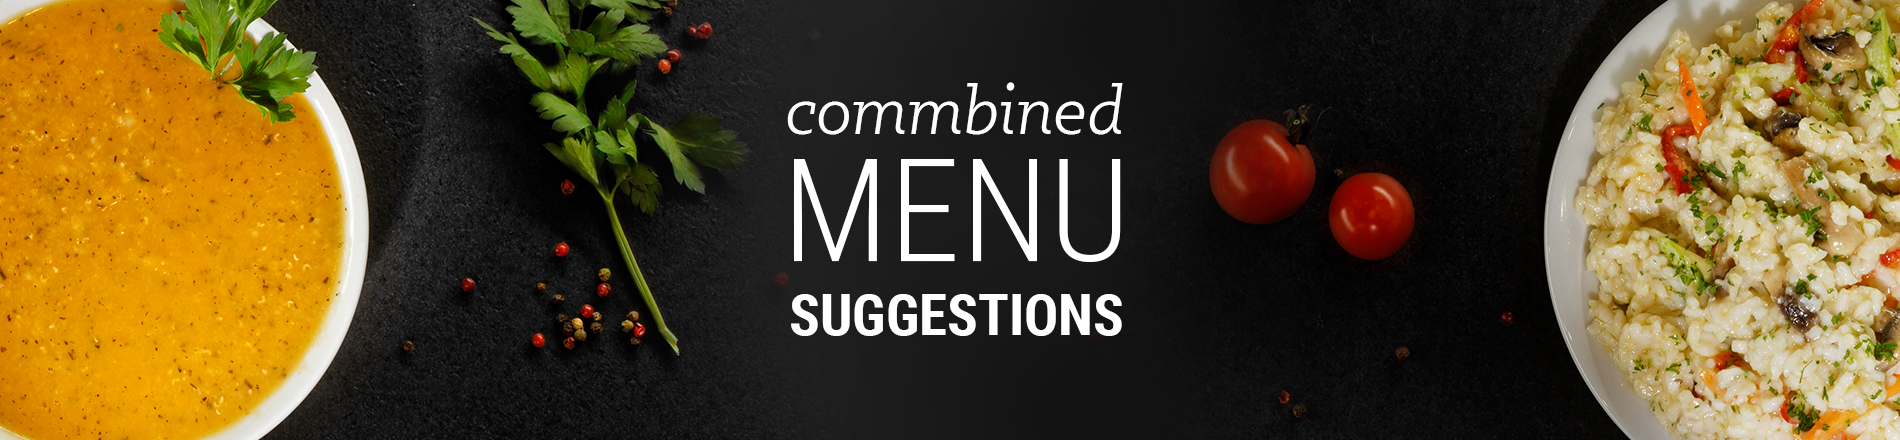 Combined Menu Suggestions